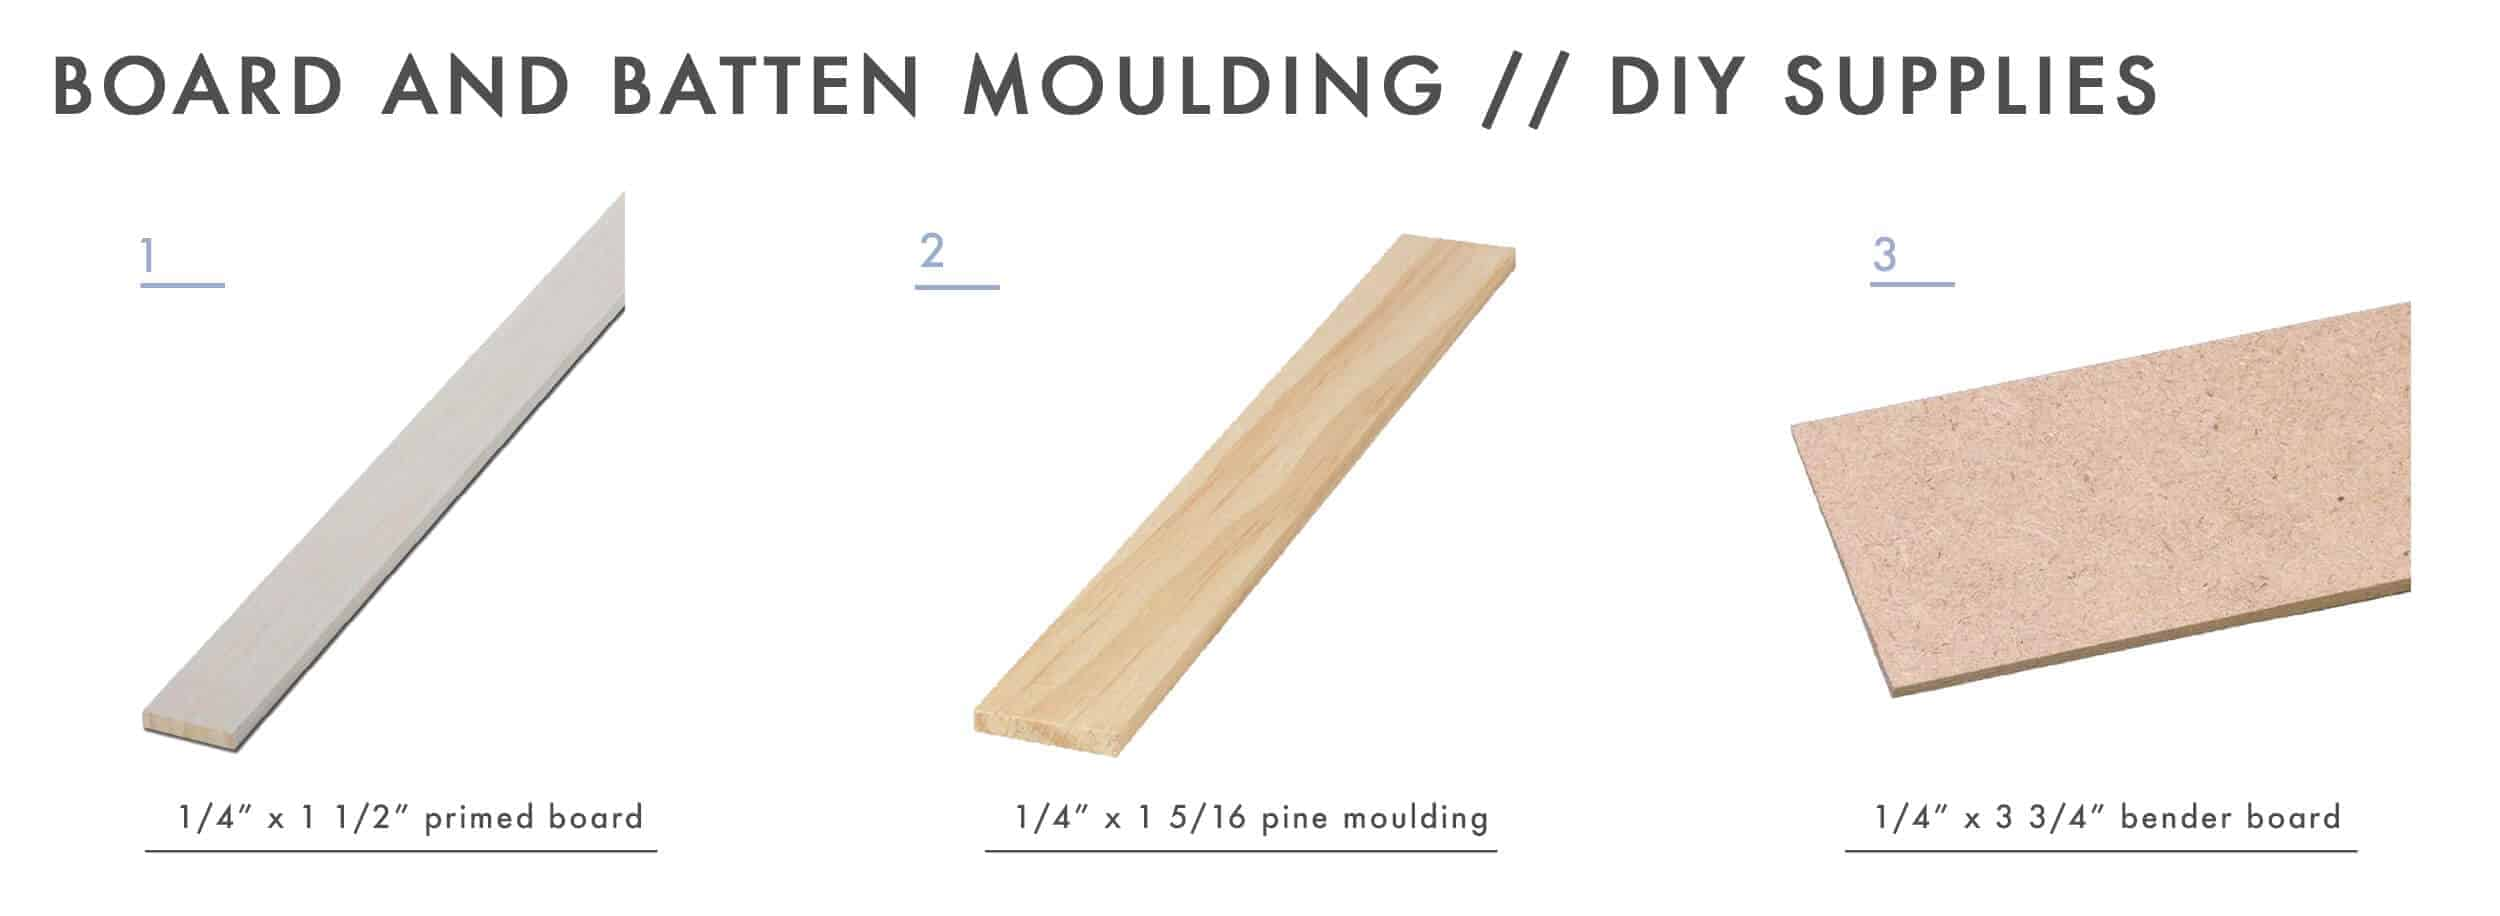 How To Add Character And Charm To Boring Architecture And Houses Modern Vertical Strip Moulding Diy Supplies 01